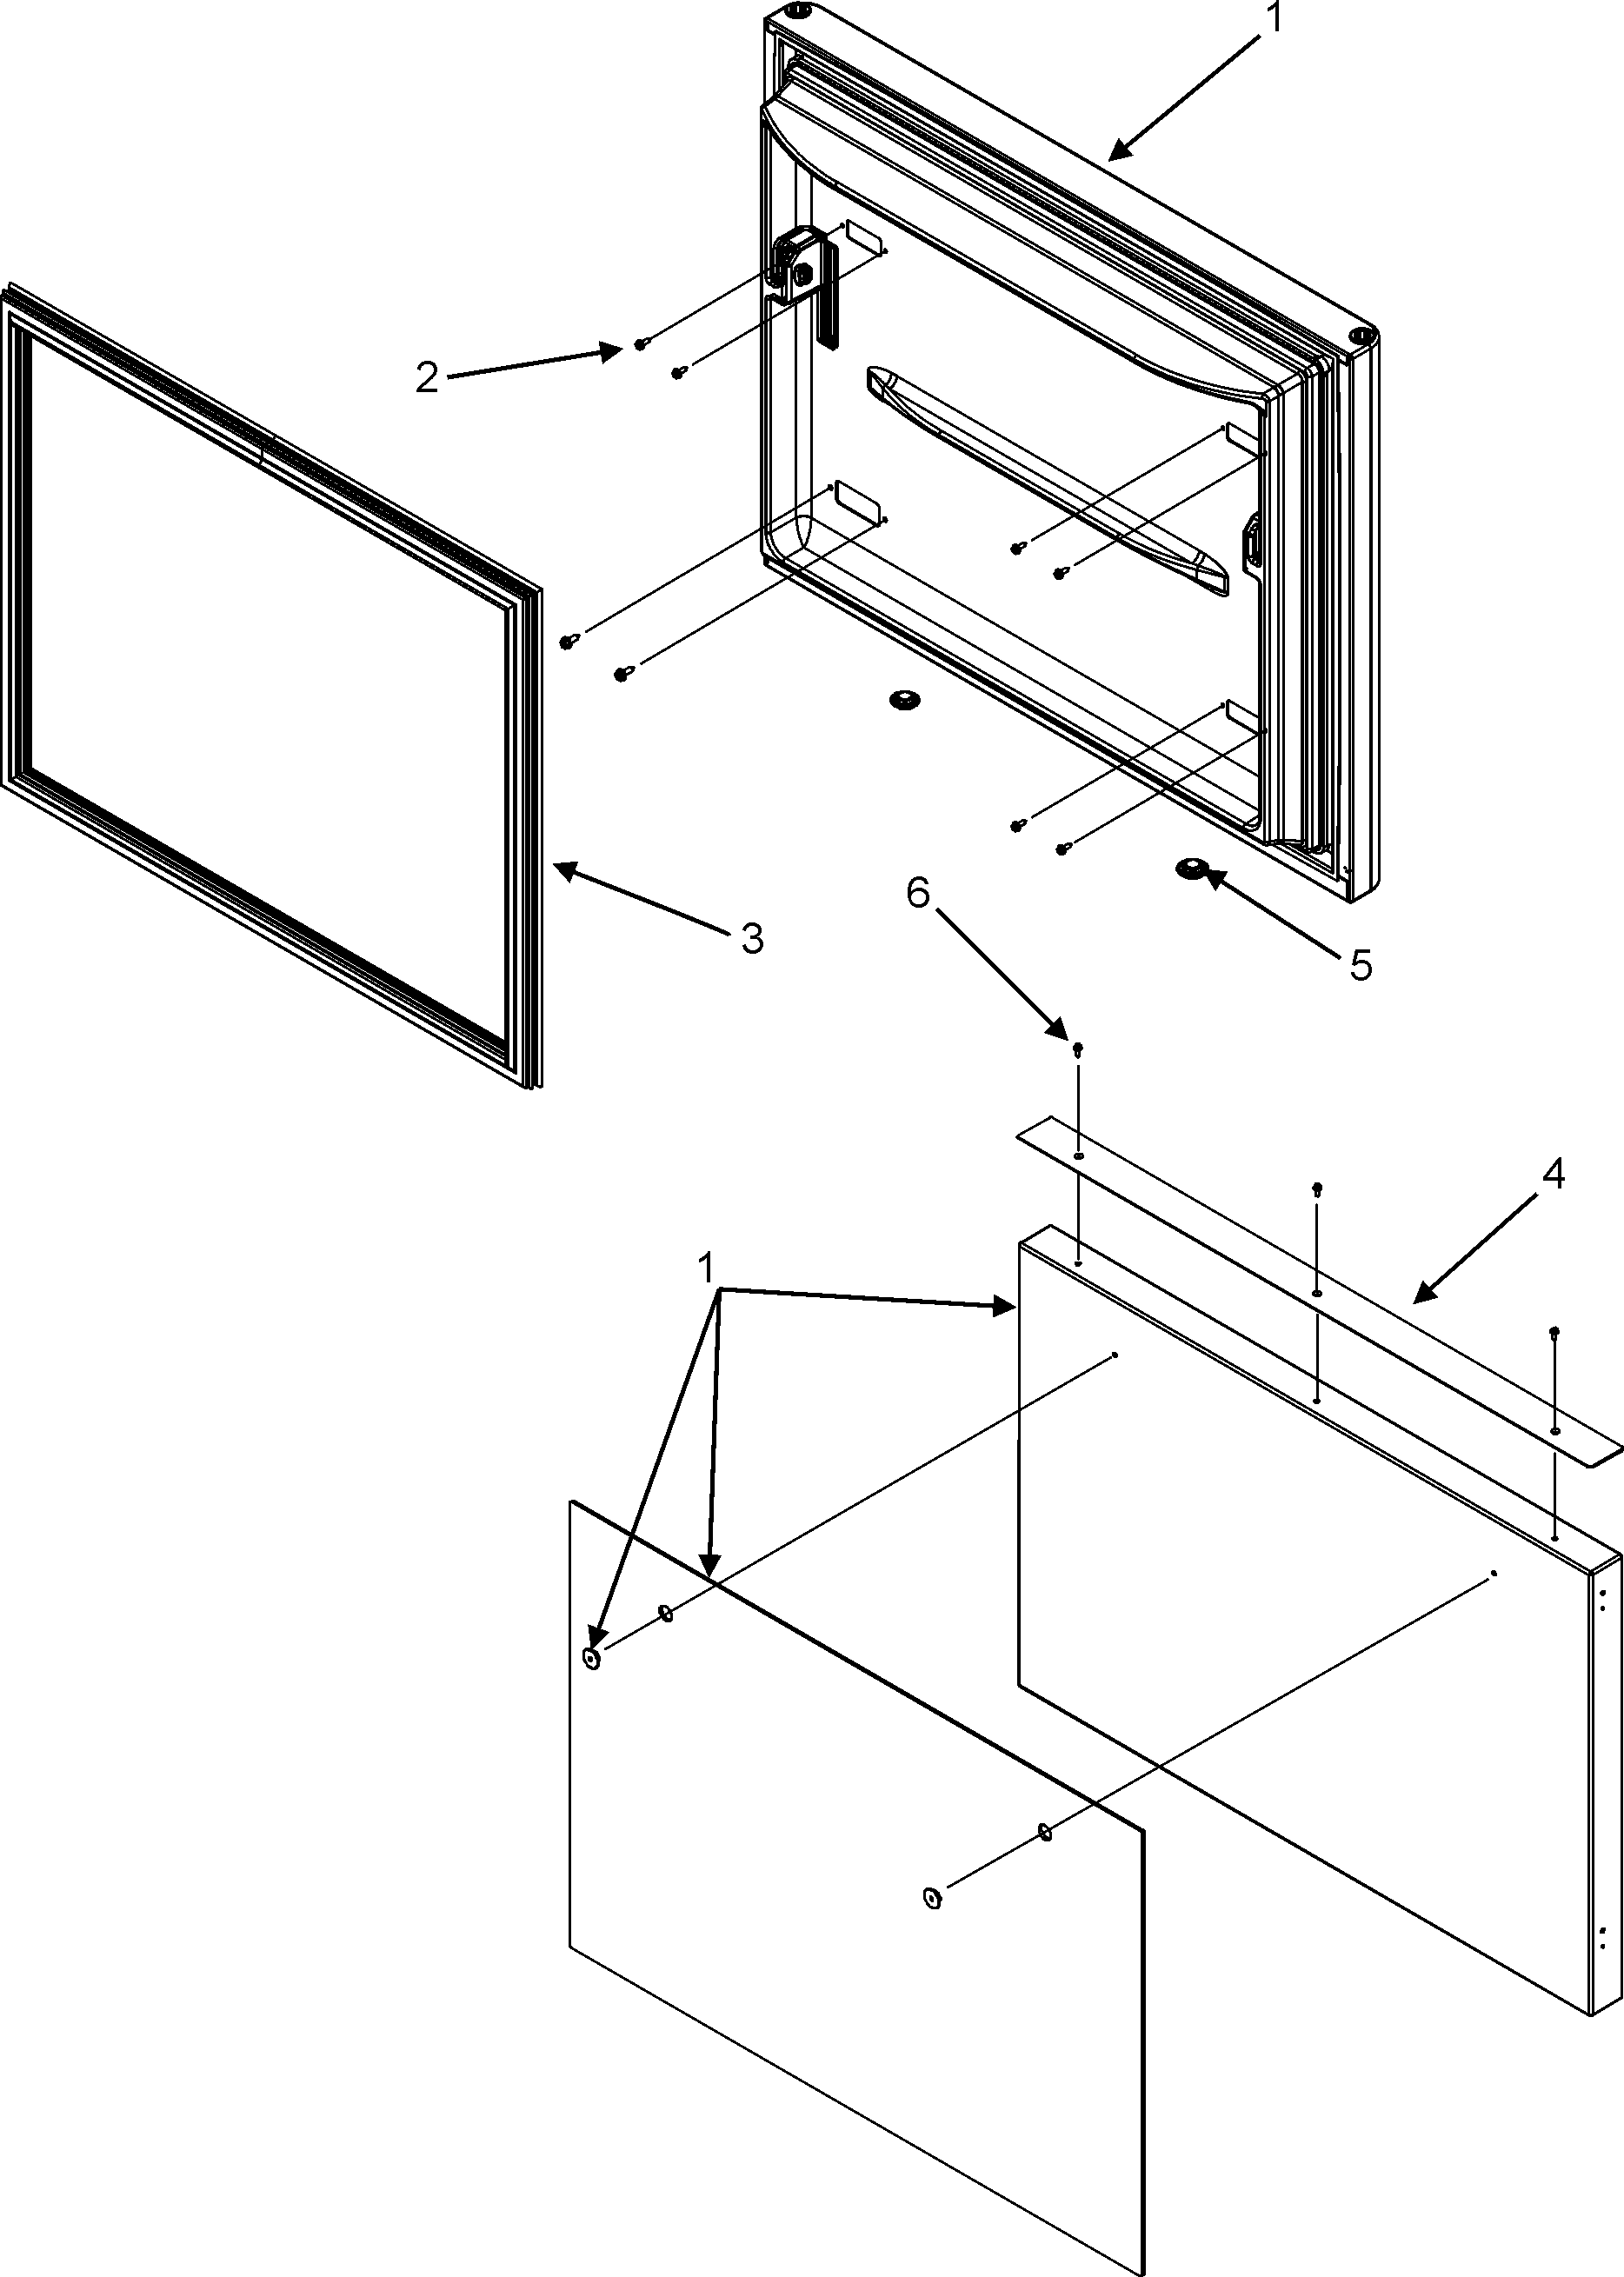 FREEZER DOOR Diagram & Parts List for Model jfc2089hpy